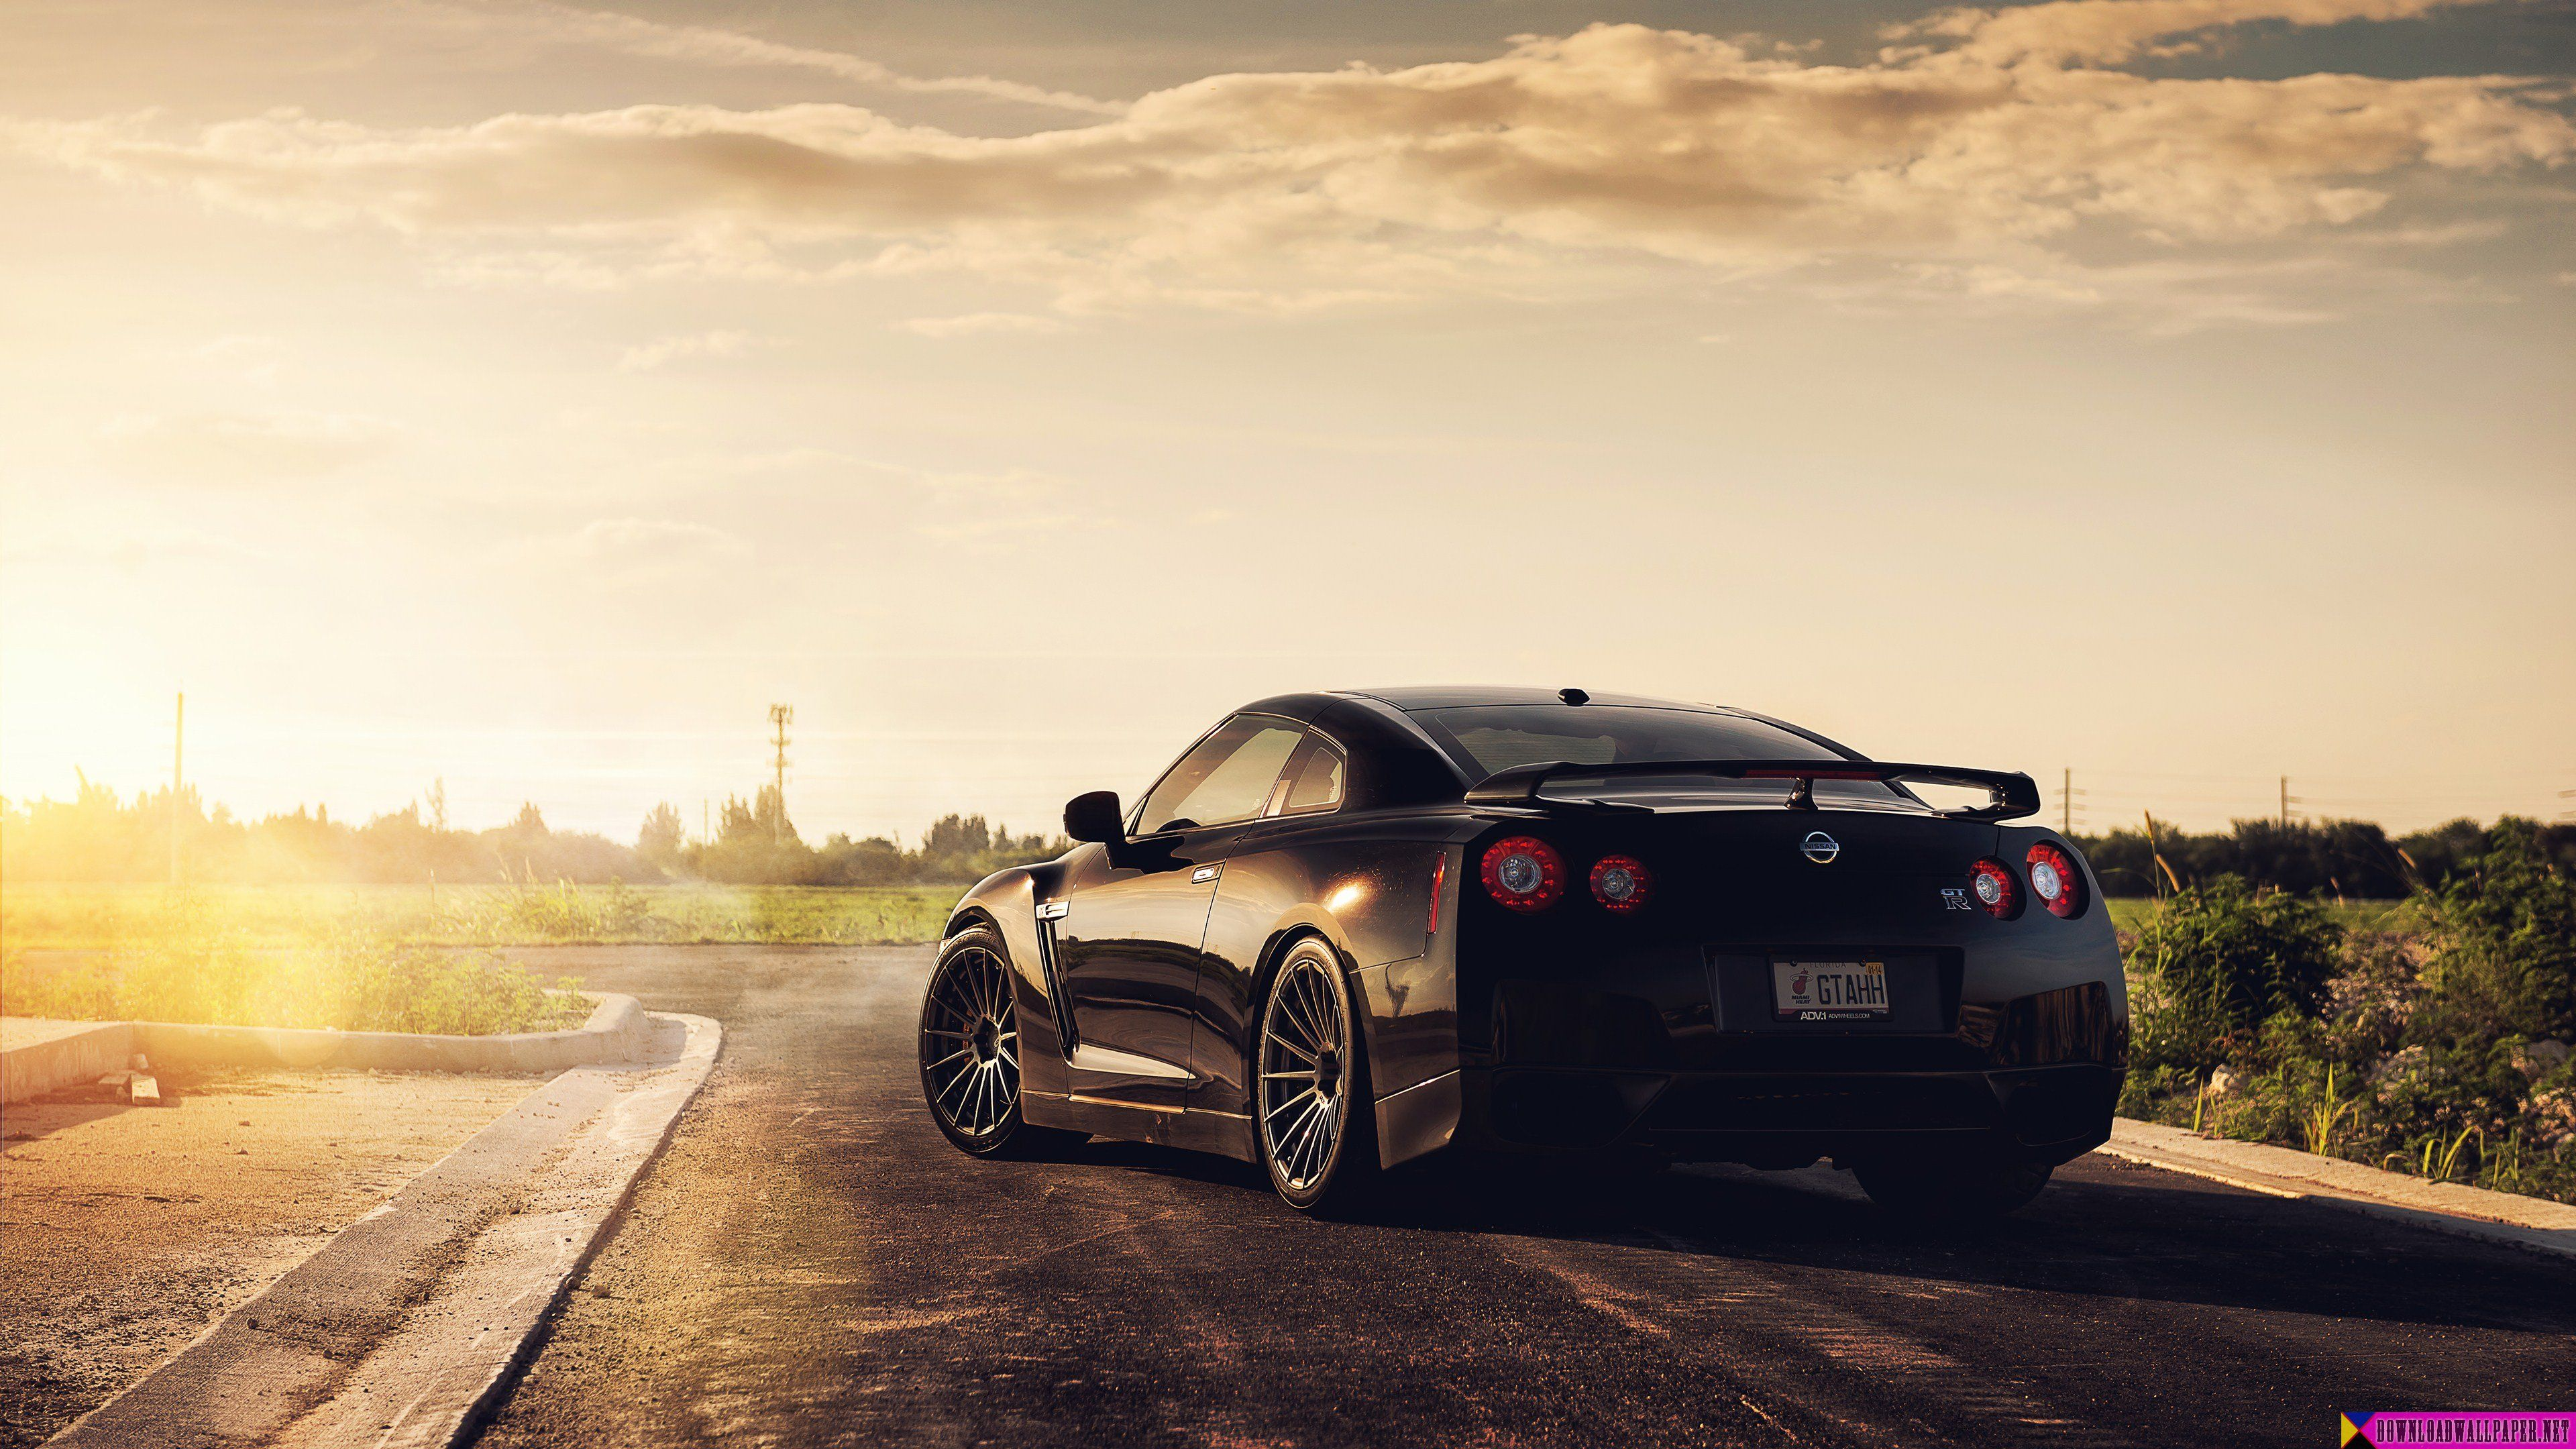 Nissan Gtr 4k Hd Wallpaper Lits Automóvil Motos Et Autos